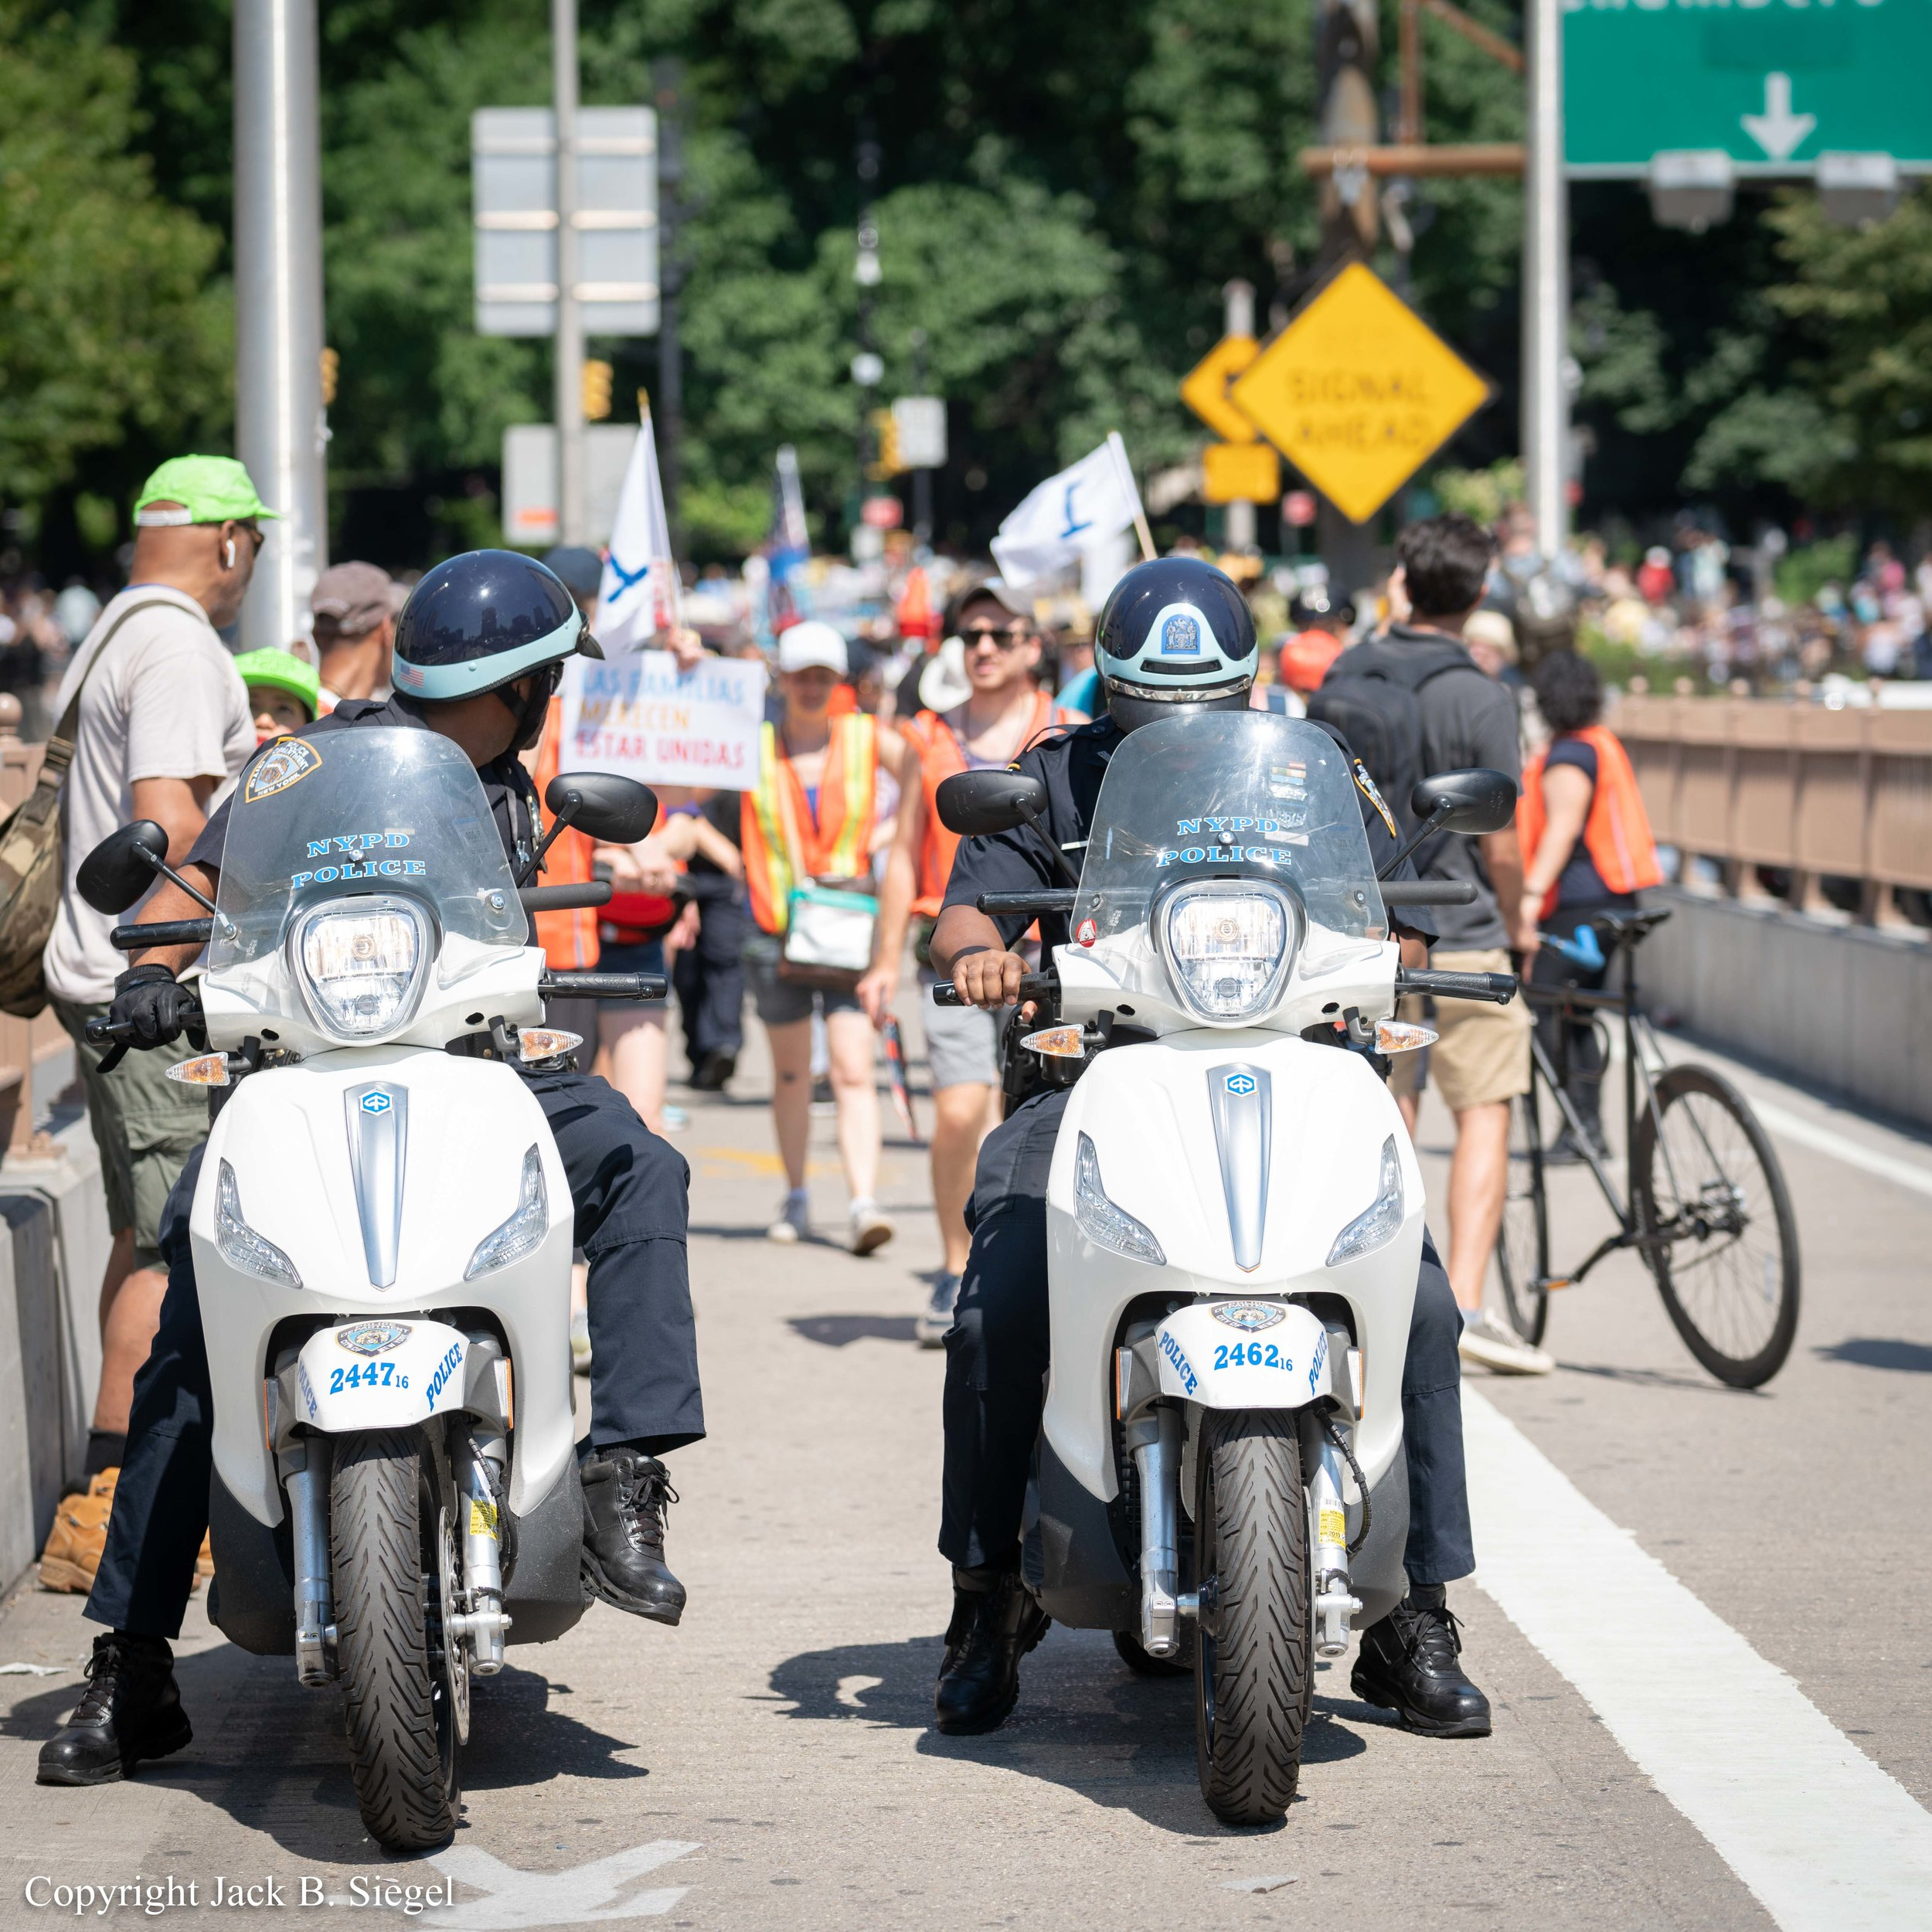 _DS24263_Copyright_The Police Wait for the Marchers to Catch Up Before Taking Off.jpg